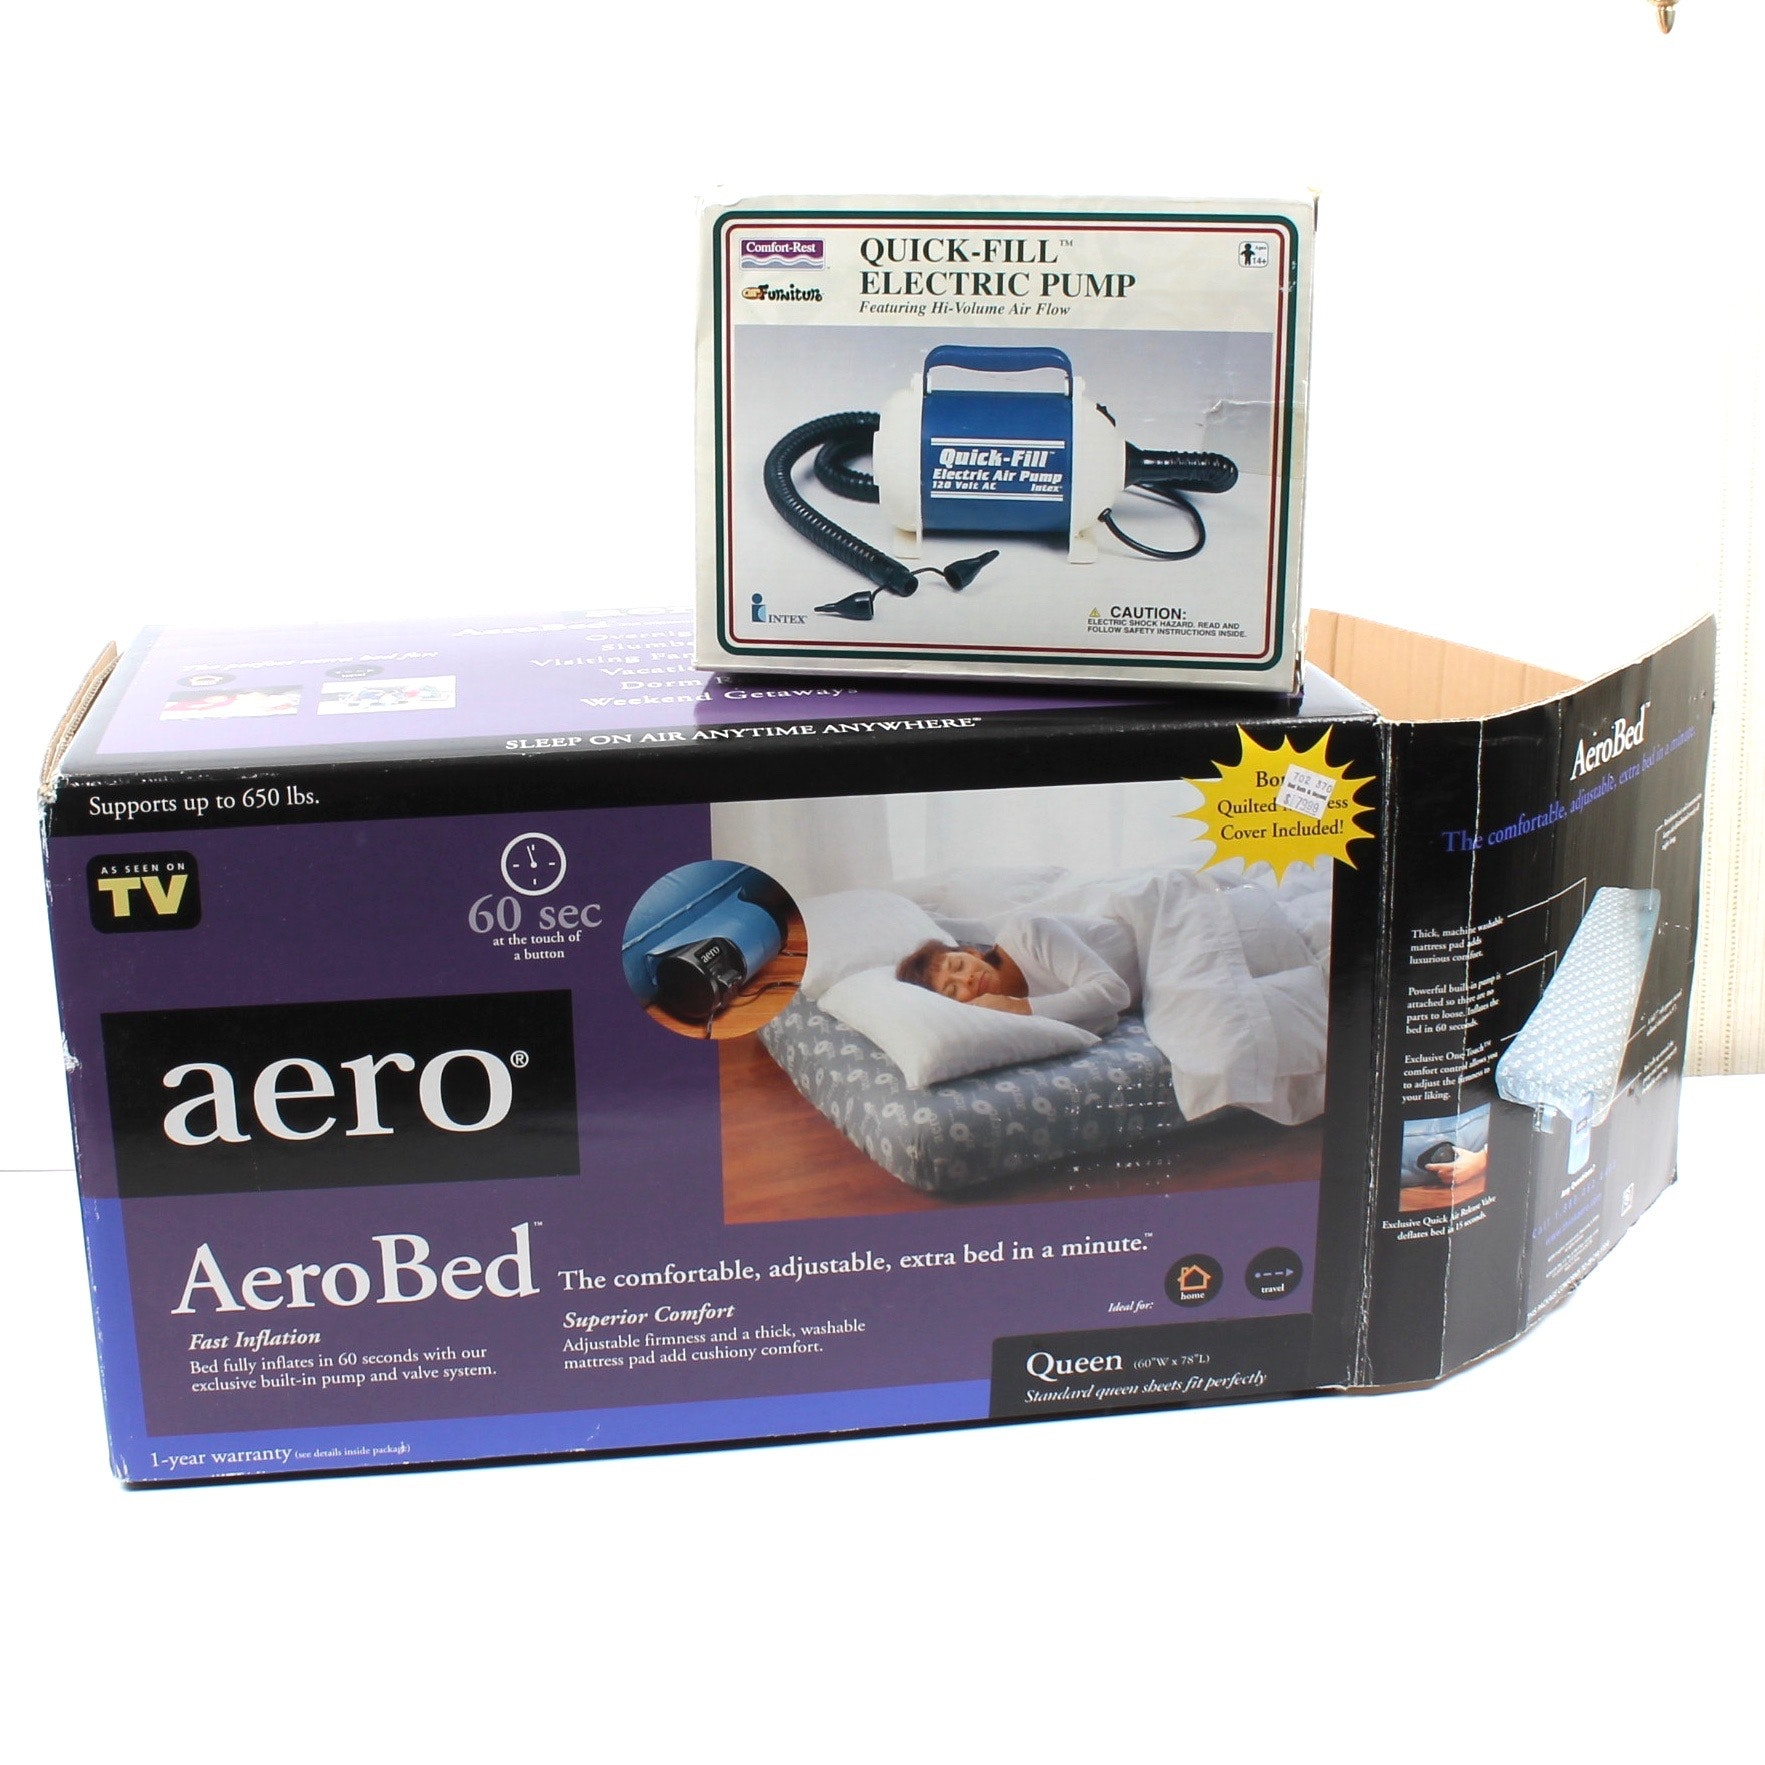 AeroBed Queen Size Air Mattress and Quick-Fill Electric Pump